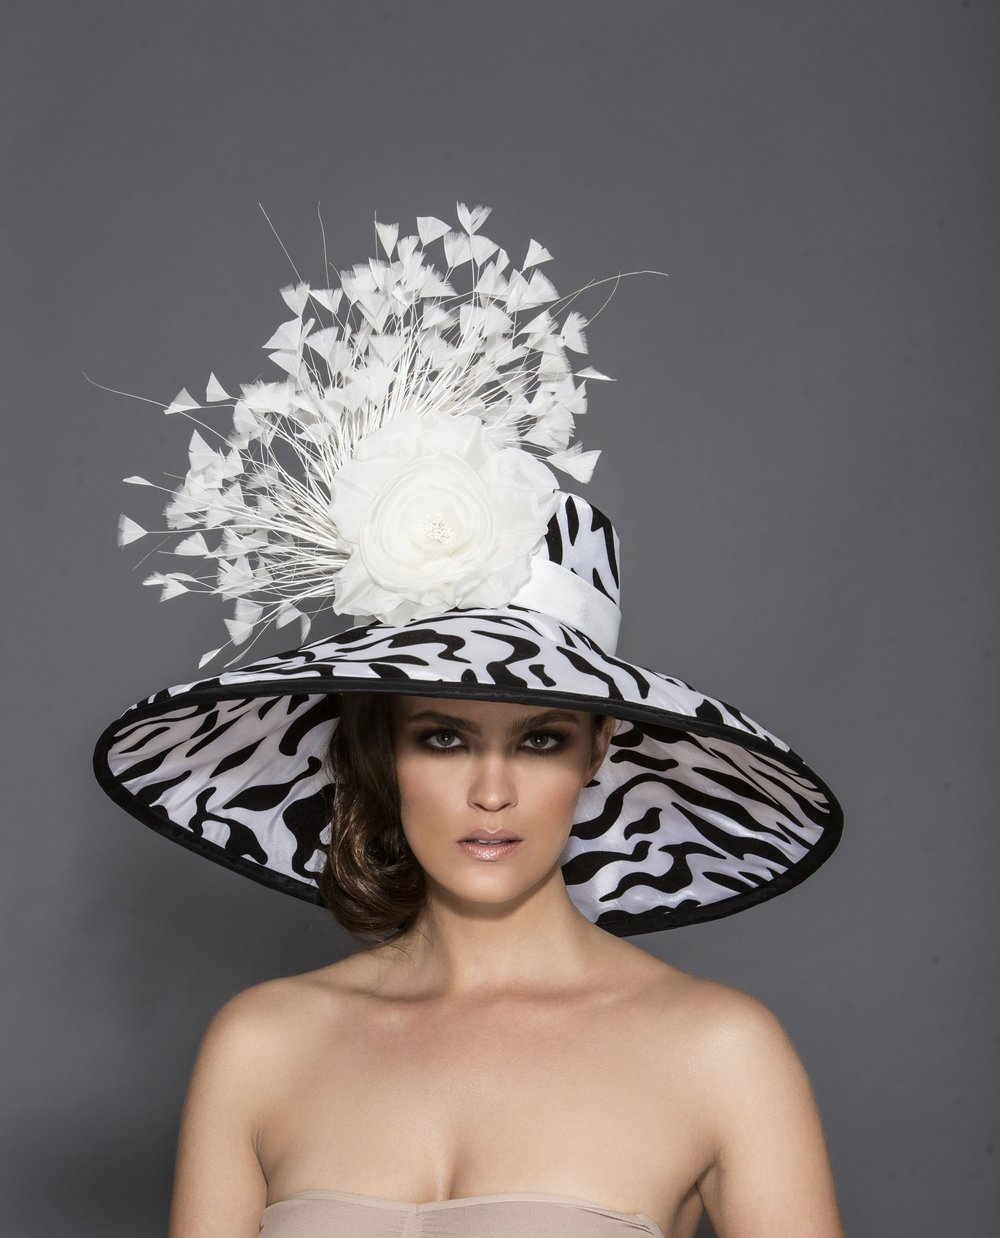 Hat designer: Arturo Rios  Photographer: Mark Sacro  Makeup: Dominique Lerma  Hair: Tuyen Tran